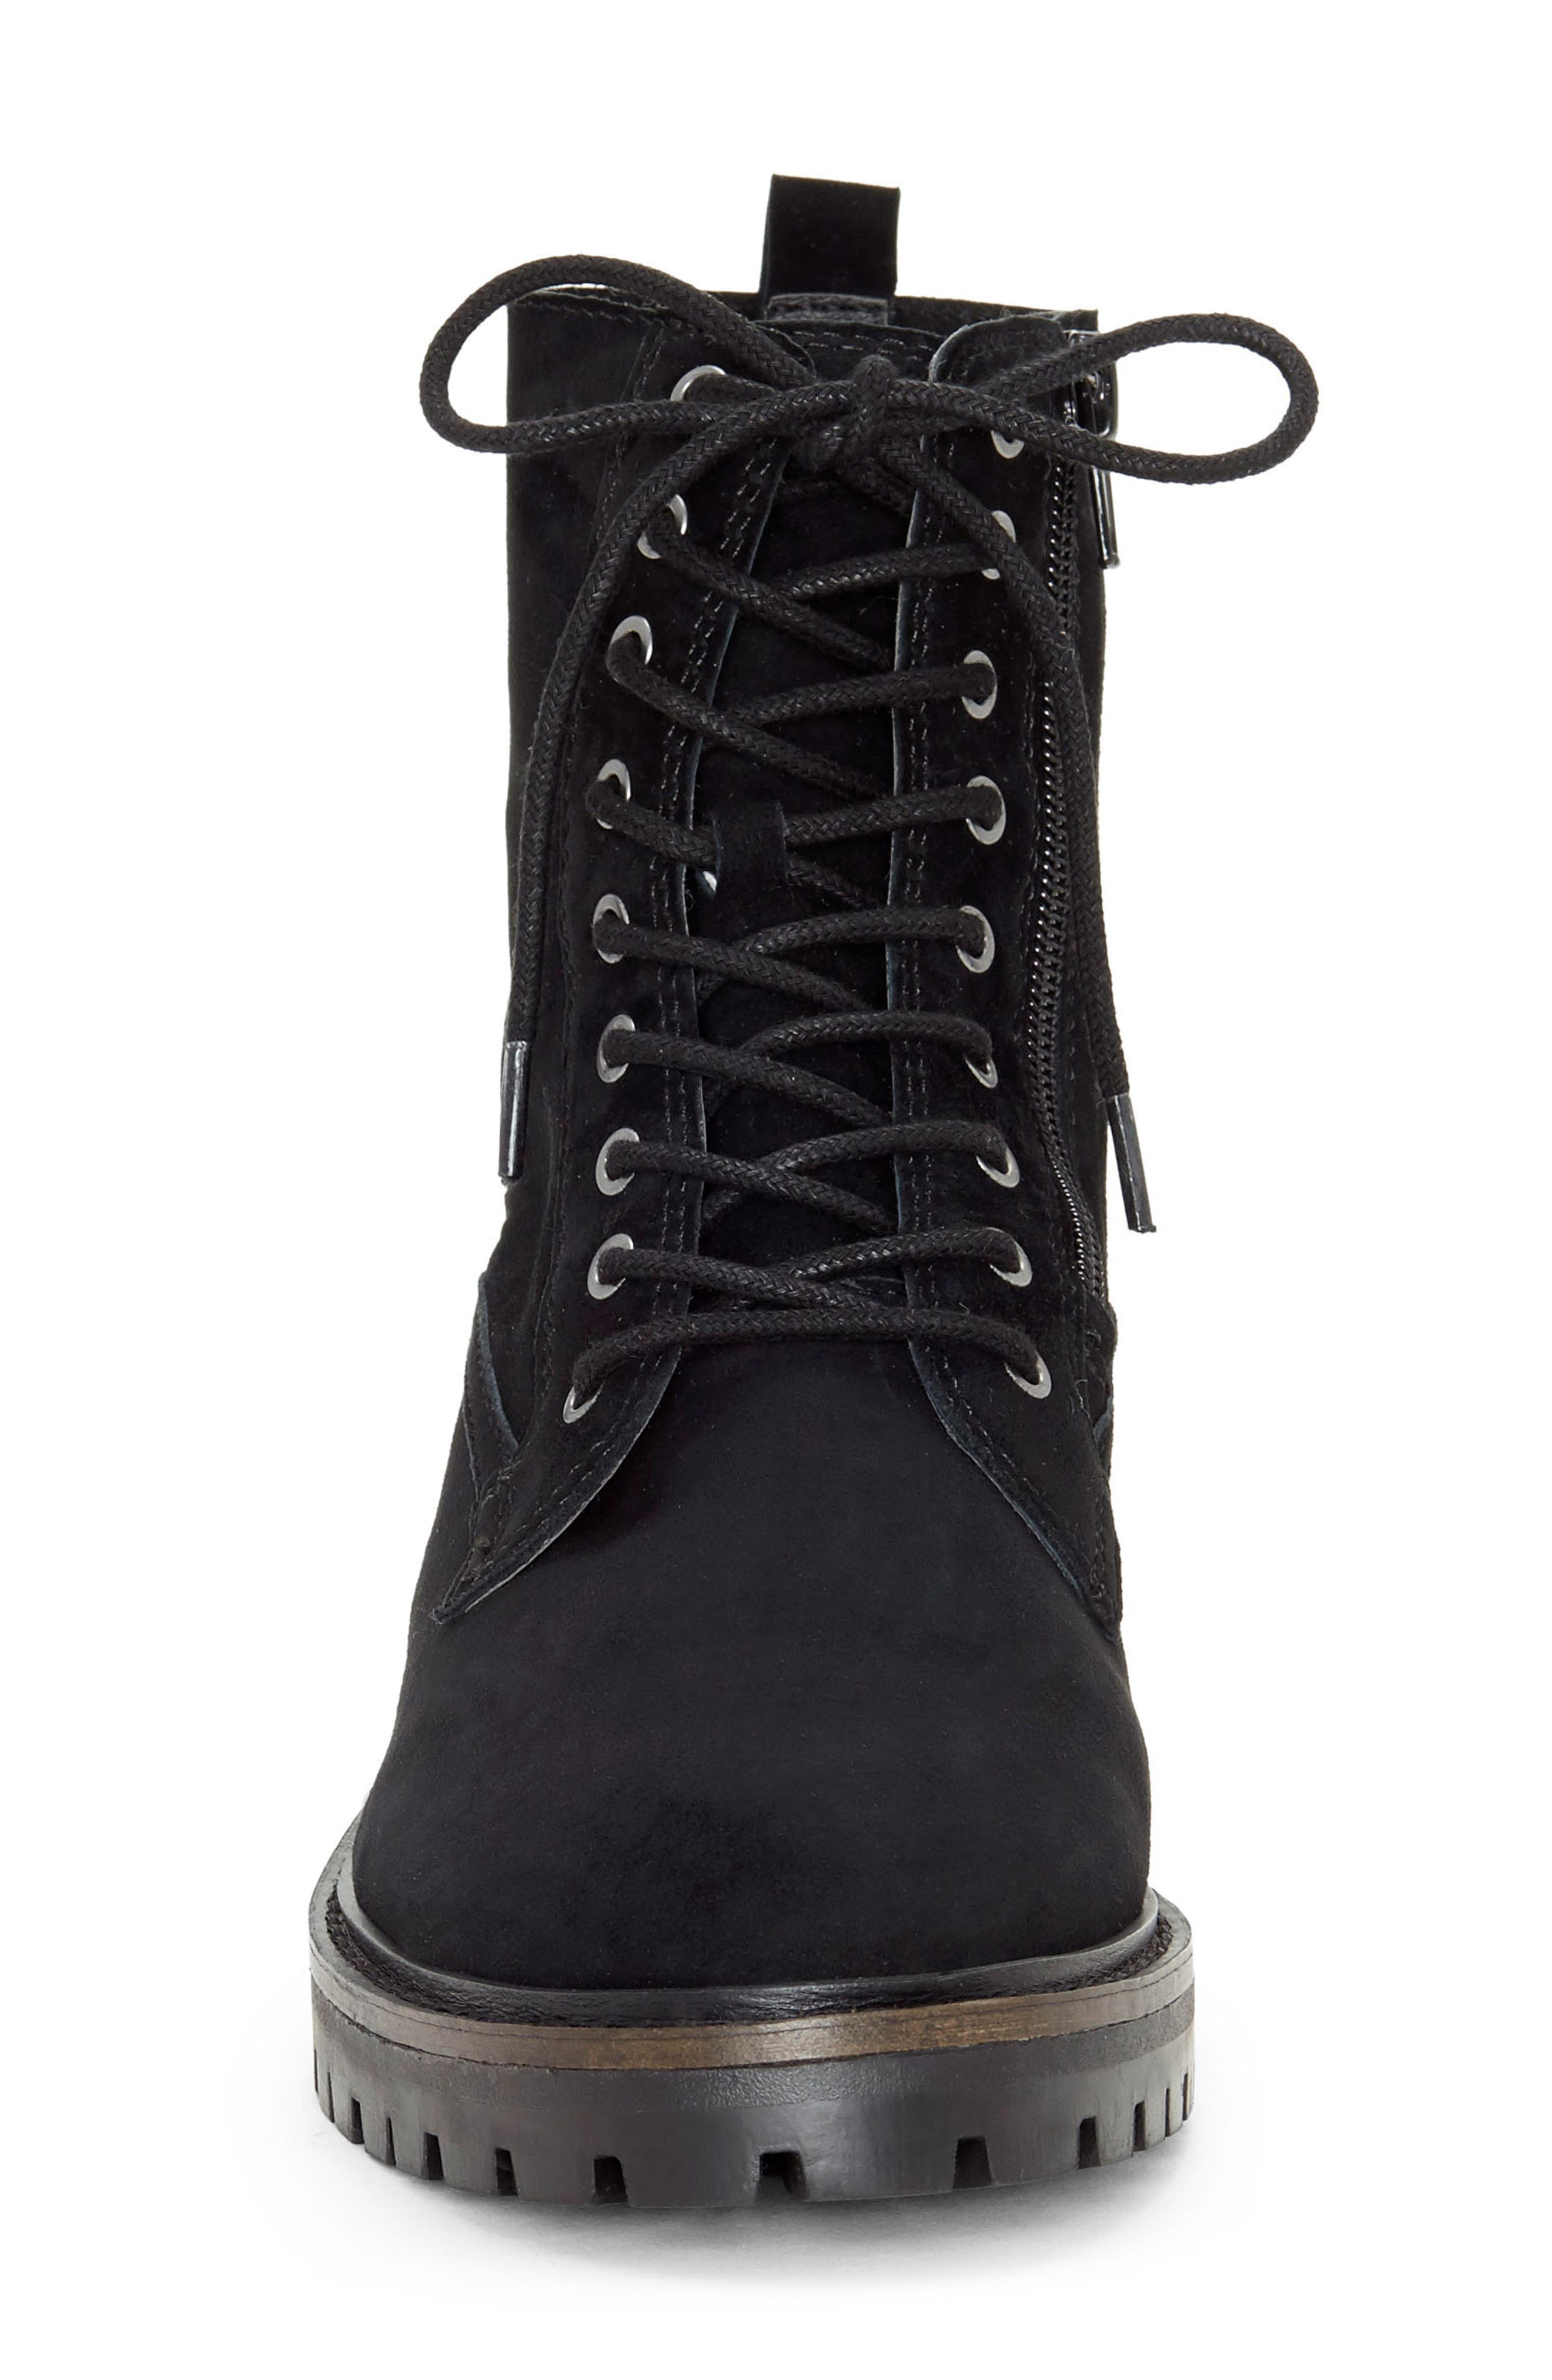 LUCKY BRAND, Idara Lace-Up Bootie, Alternate thumbnail 3, color, 001